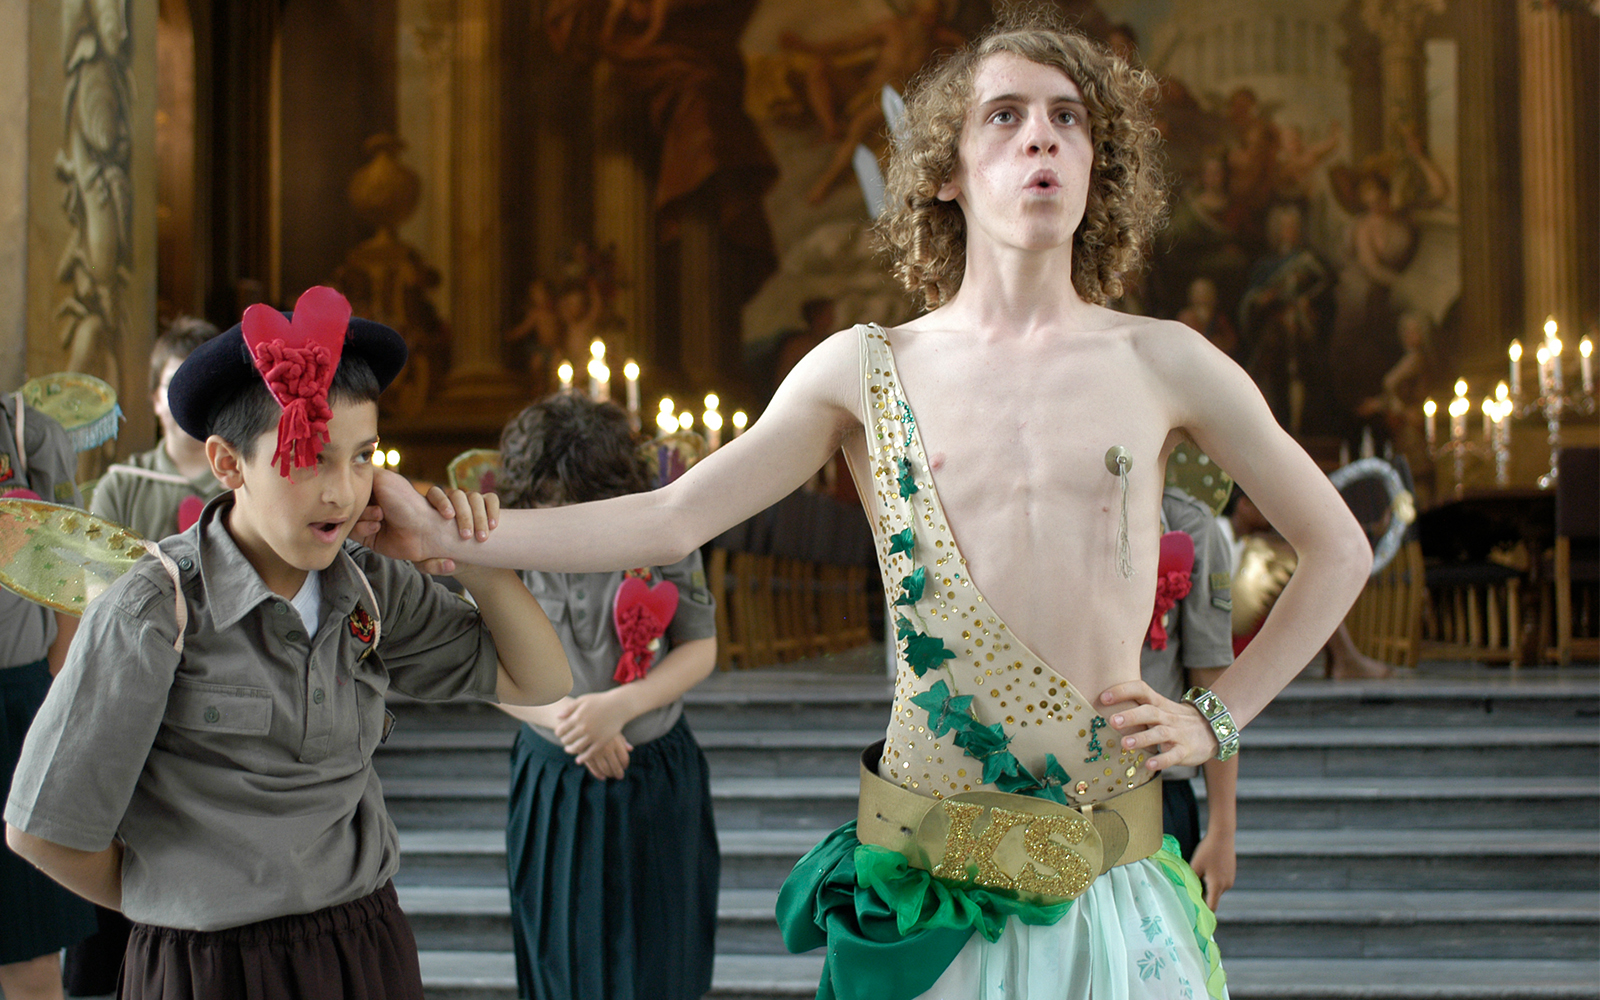 An actor dressed in a gold leotard and green skirt has his hand around the neck of a young actor